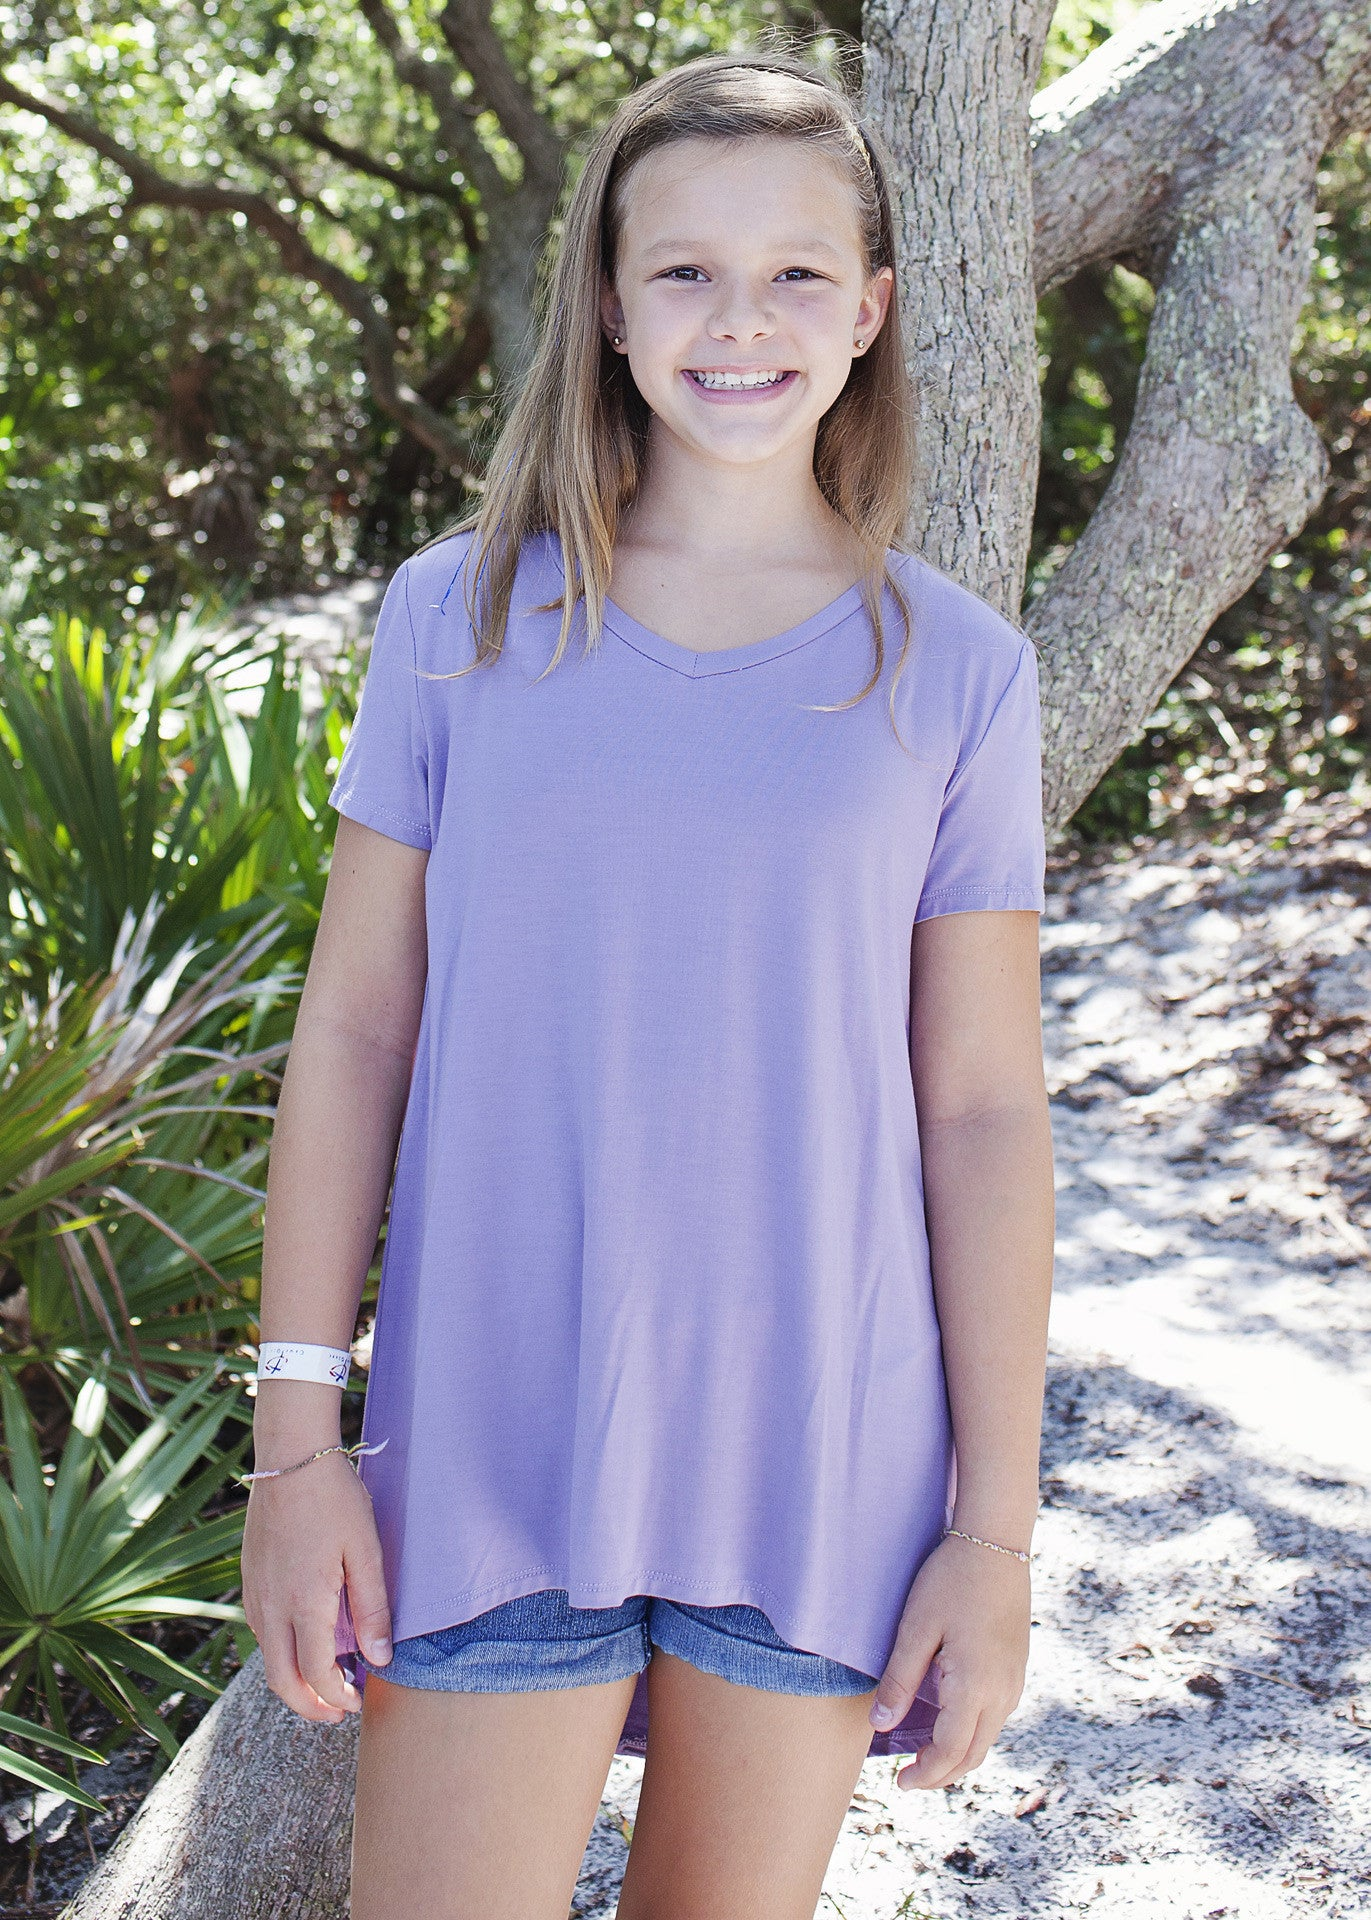 Kids High Low Top - Piko Clearance Center - 10